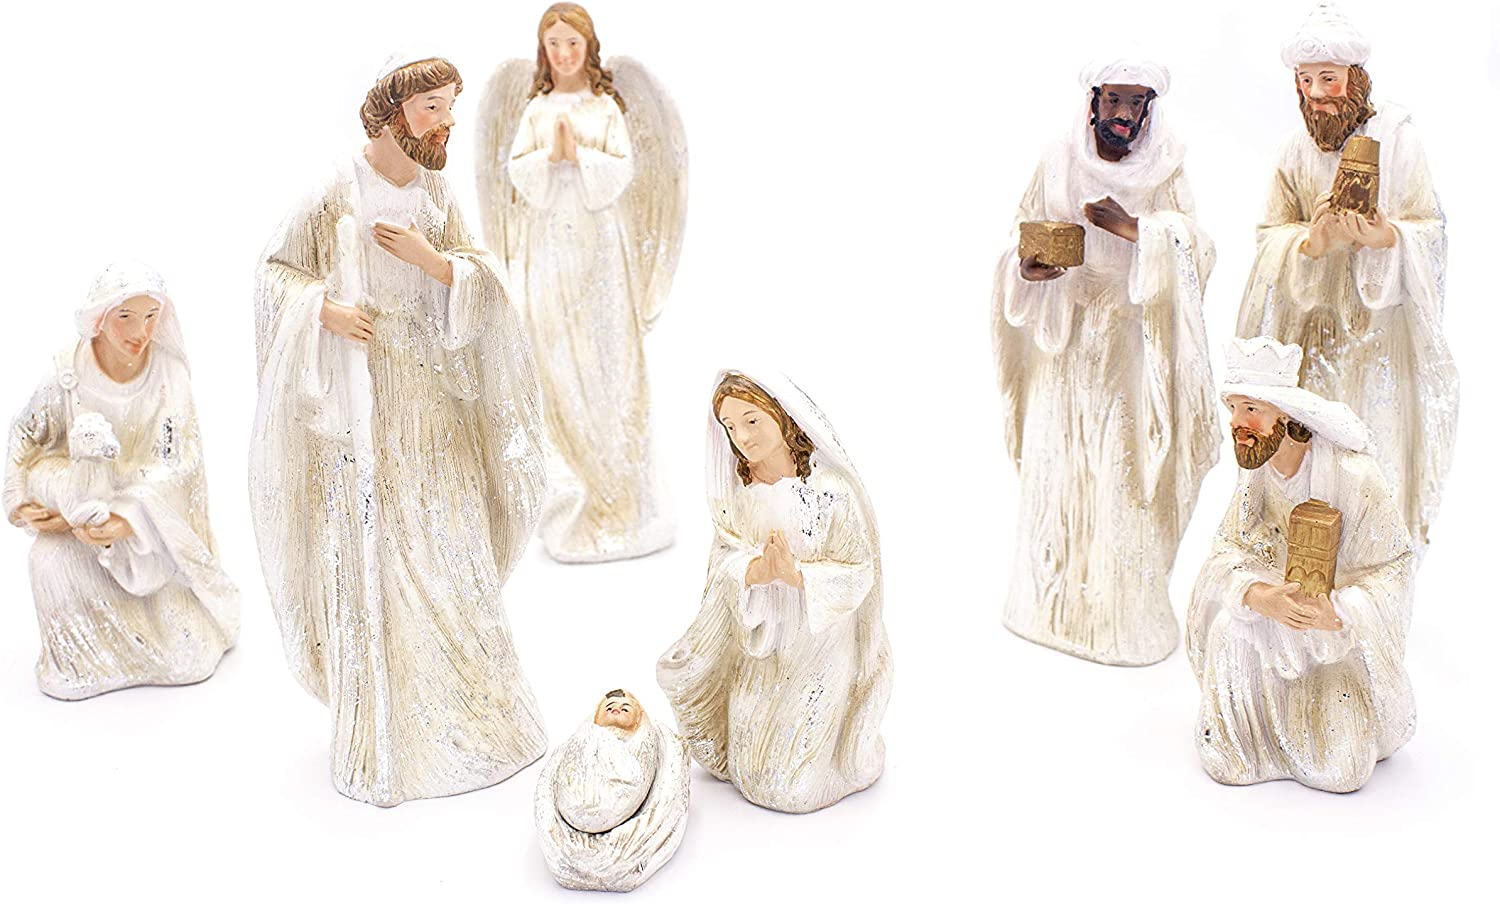 Amazon Com Christmas 8 Piece Complete Indoor Nativity Scene Set White With Silver Accents Holiday Decoration Figurines Includes 8 Real Life Statues Of The Holy Family Wisemen Shepard And Angel Kitchen Dining